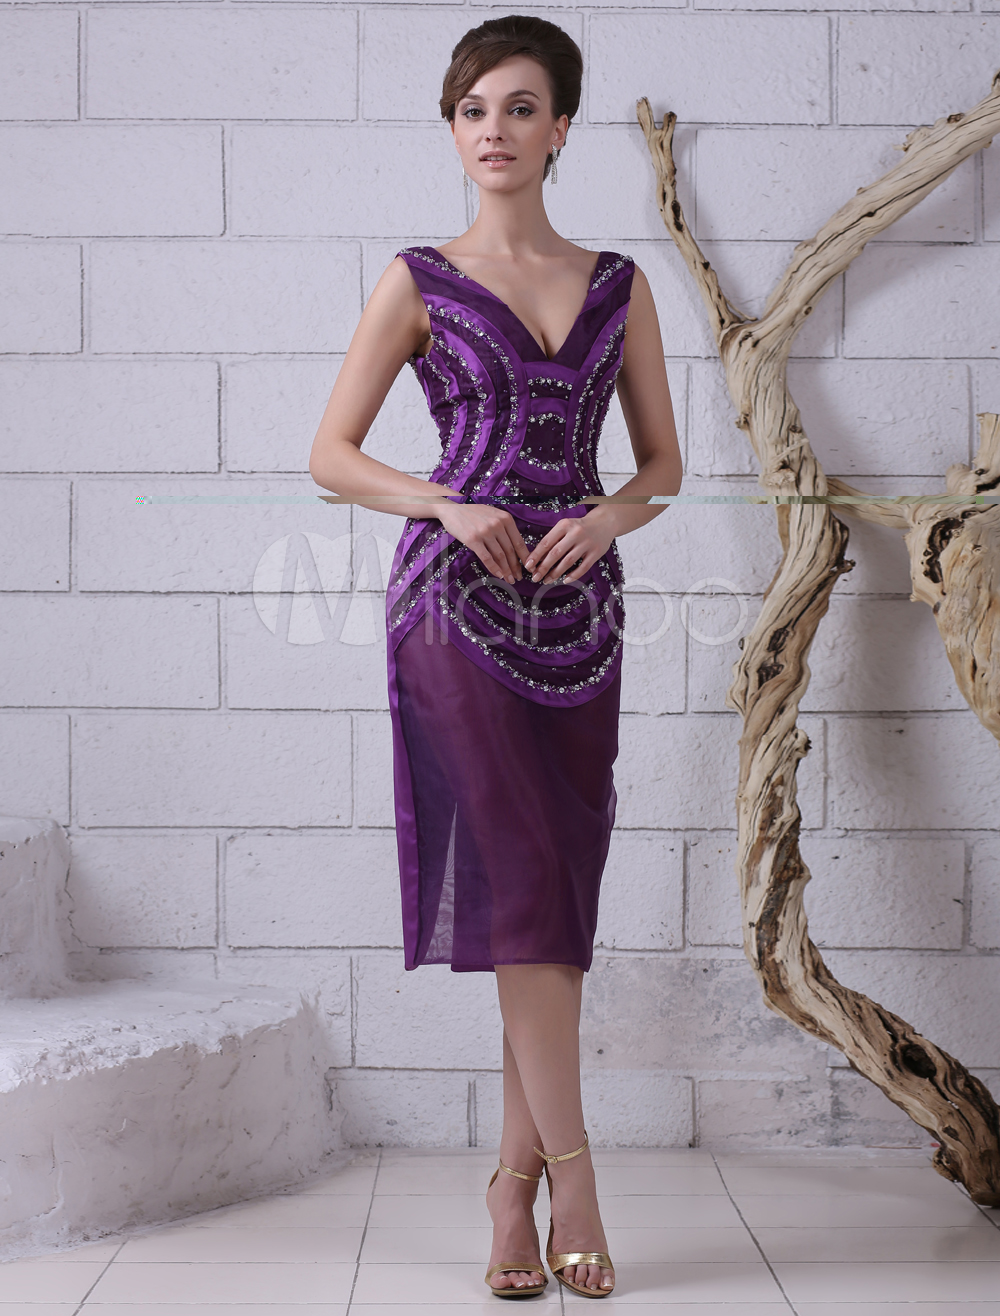 Buy Lavender Cocktail Dress Organza Beading Prom Dress V Neck Sleeveless Sheath Short Party Dress Wedding Guest Dress Milanoo for $136.79 in Milanoo store